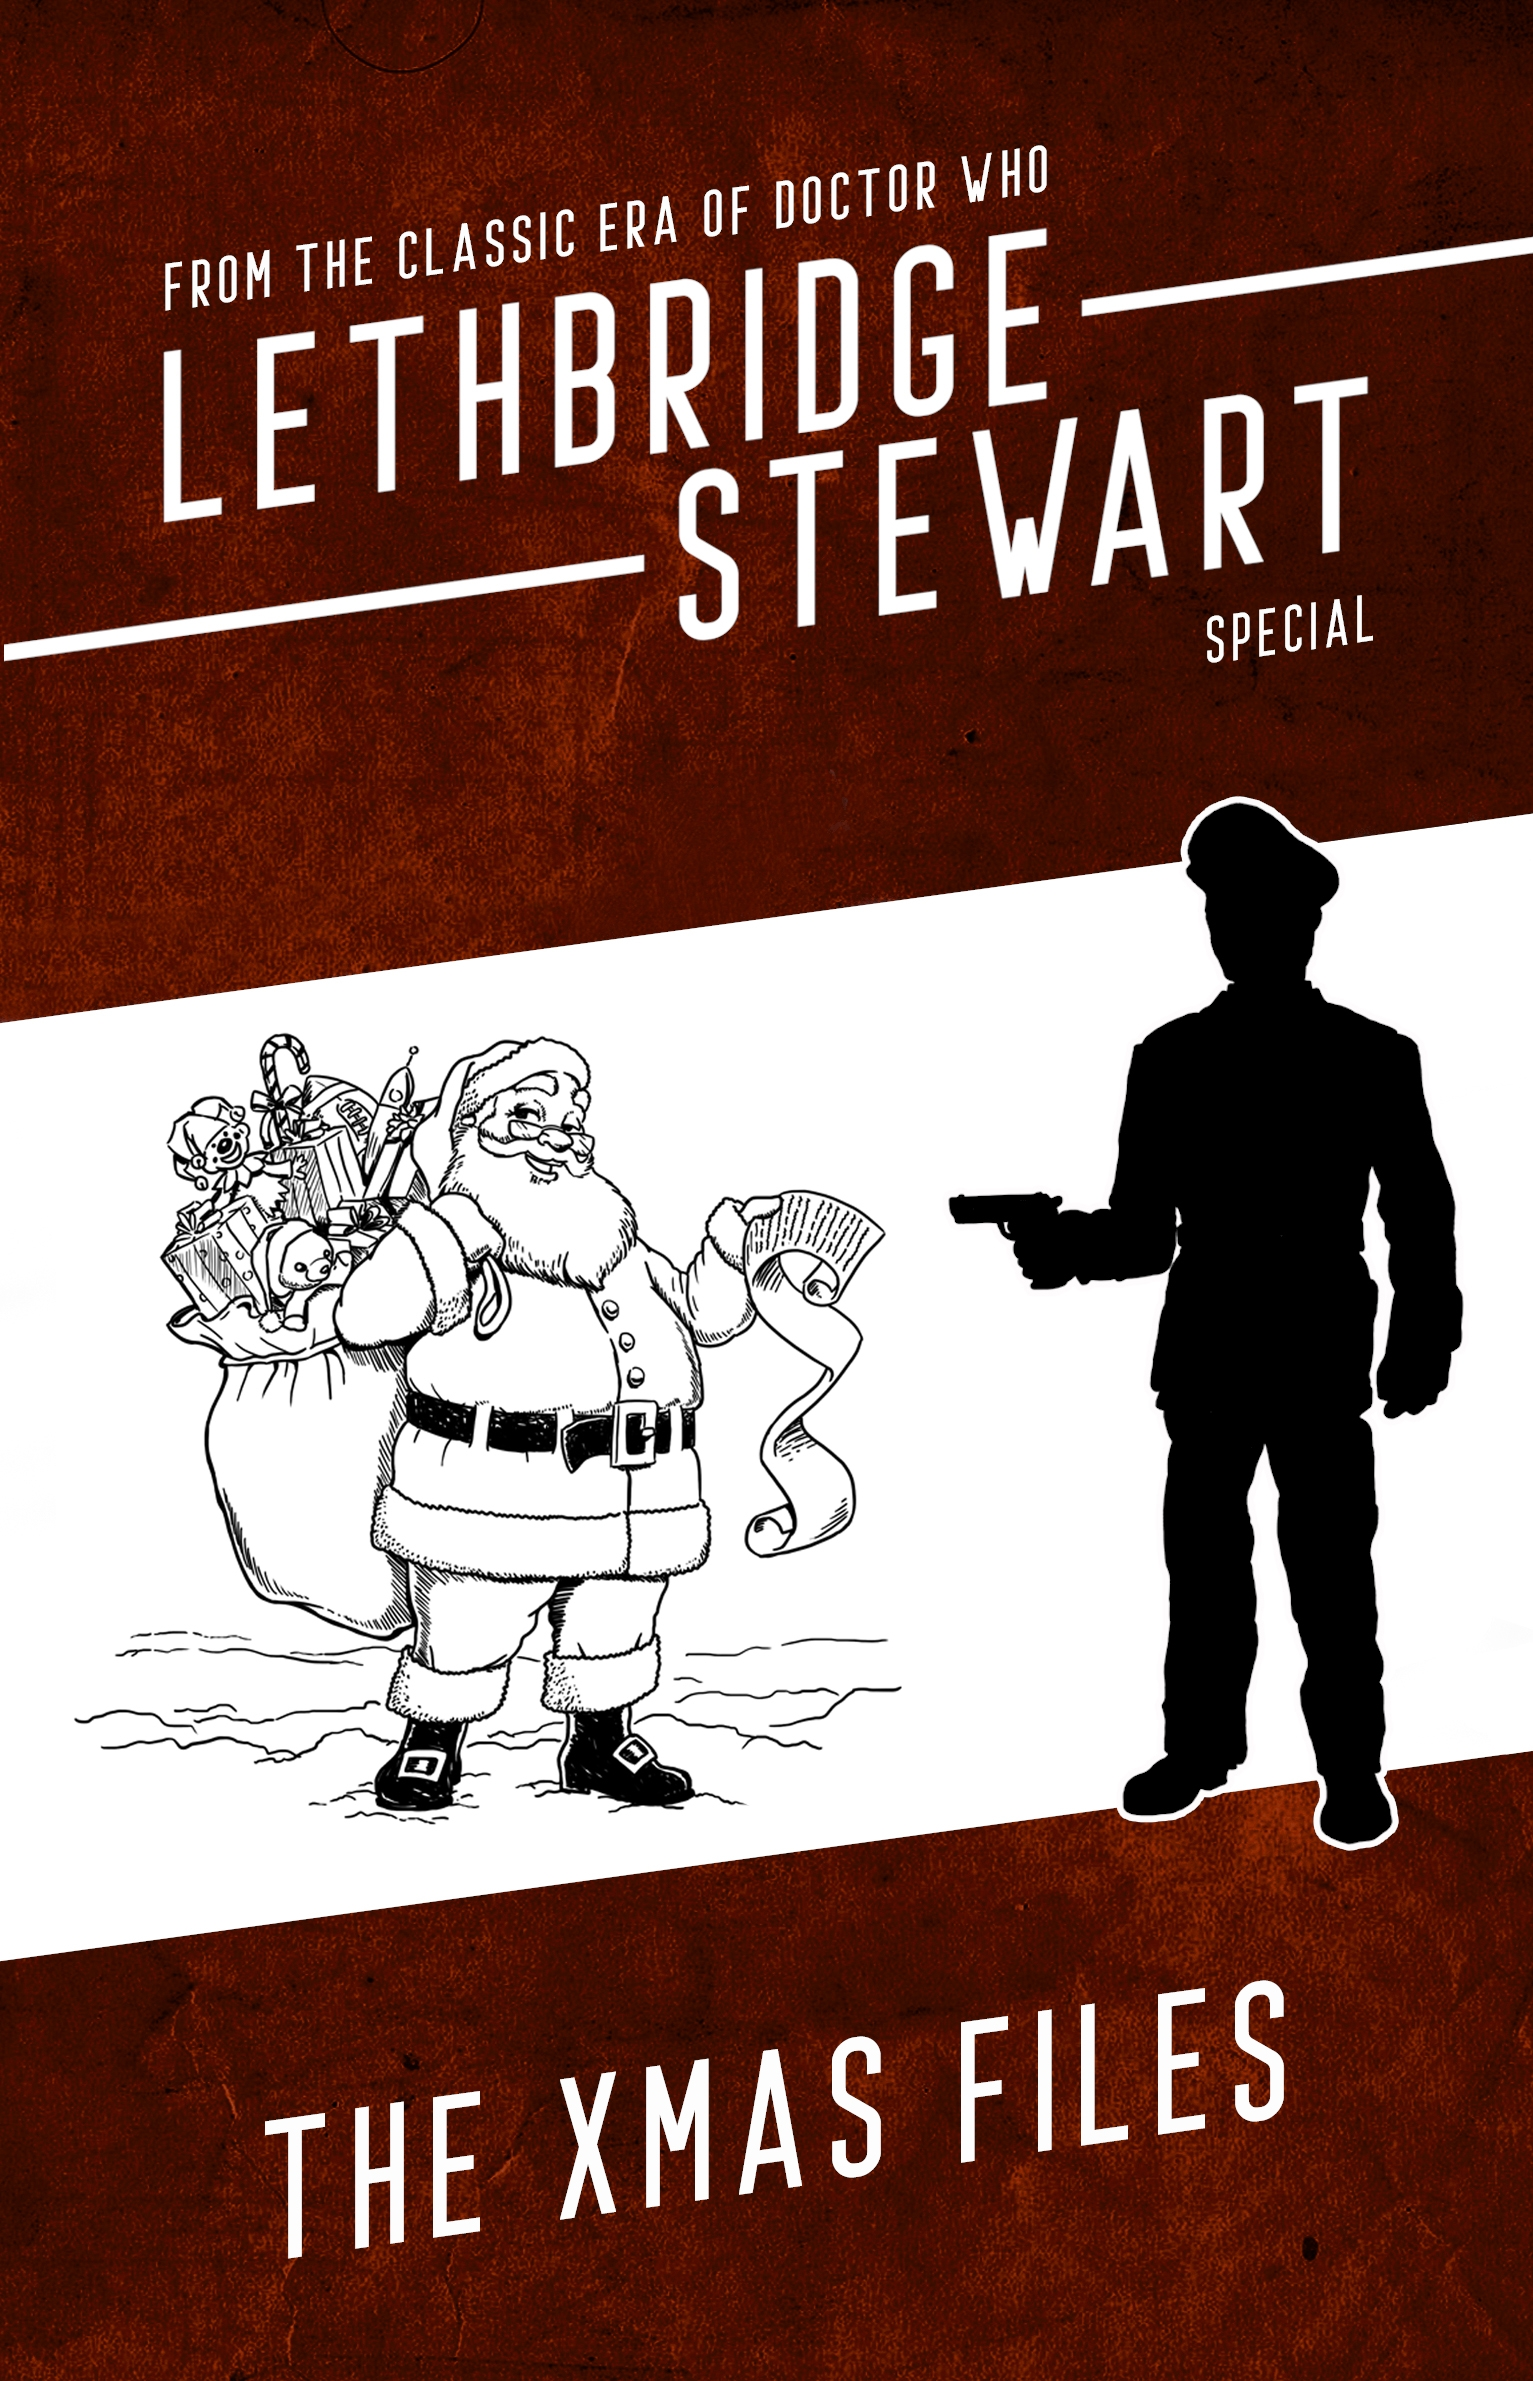 Lethbridge-Stewart: The XMas Files (Credit: Candy Har)